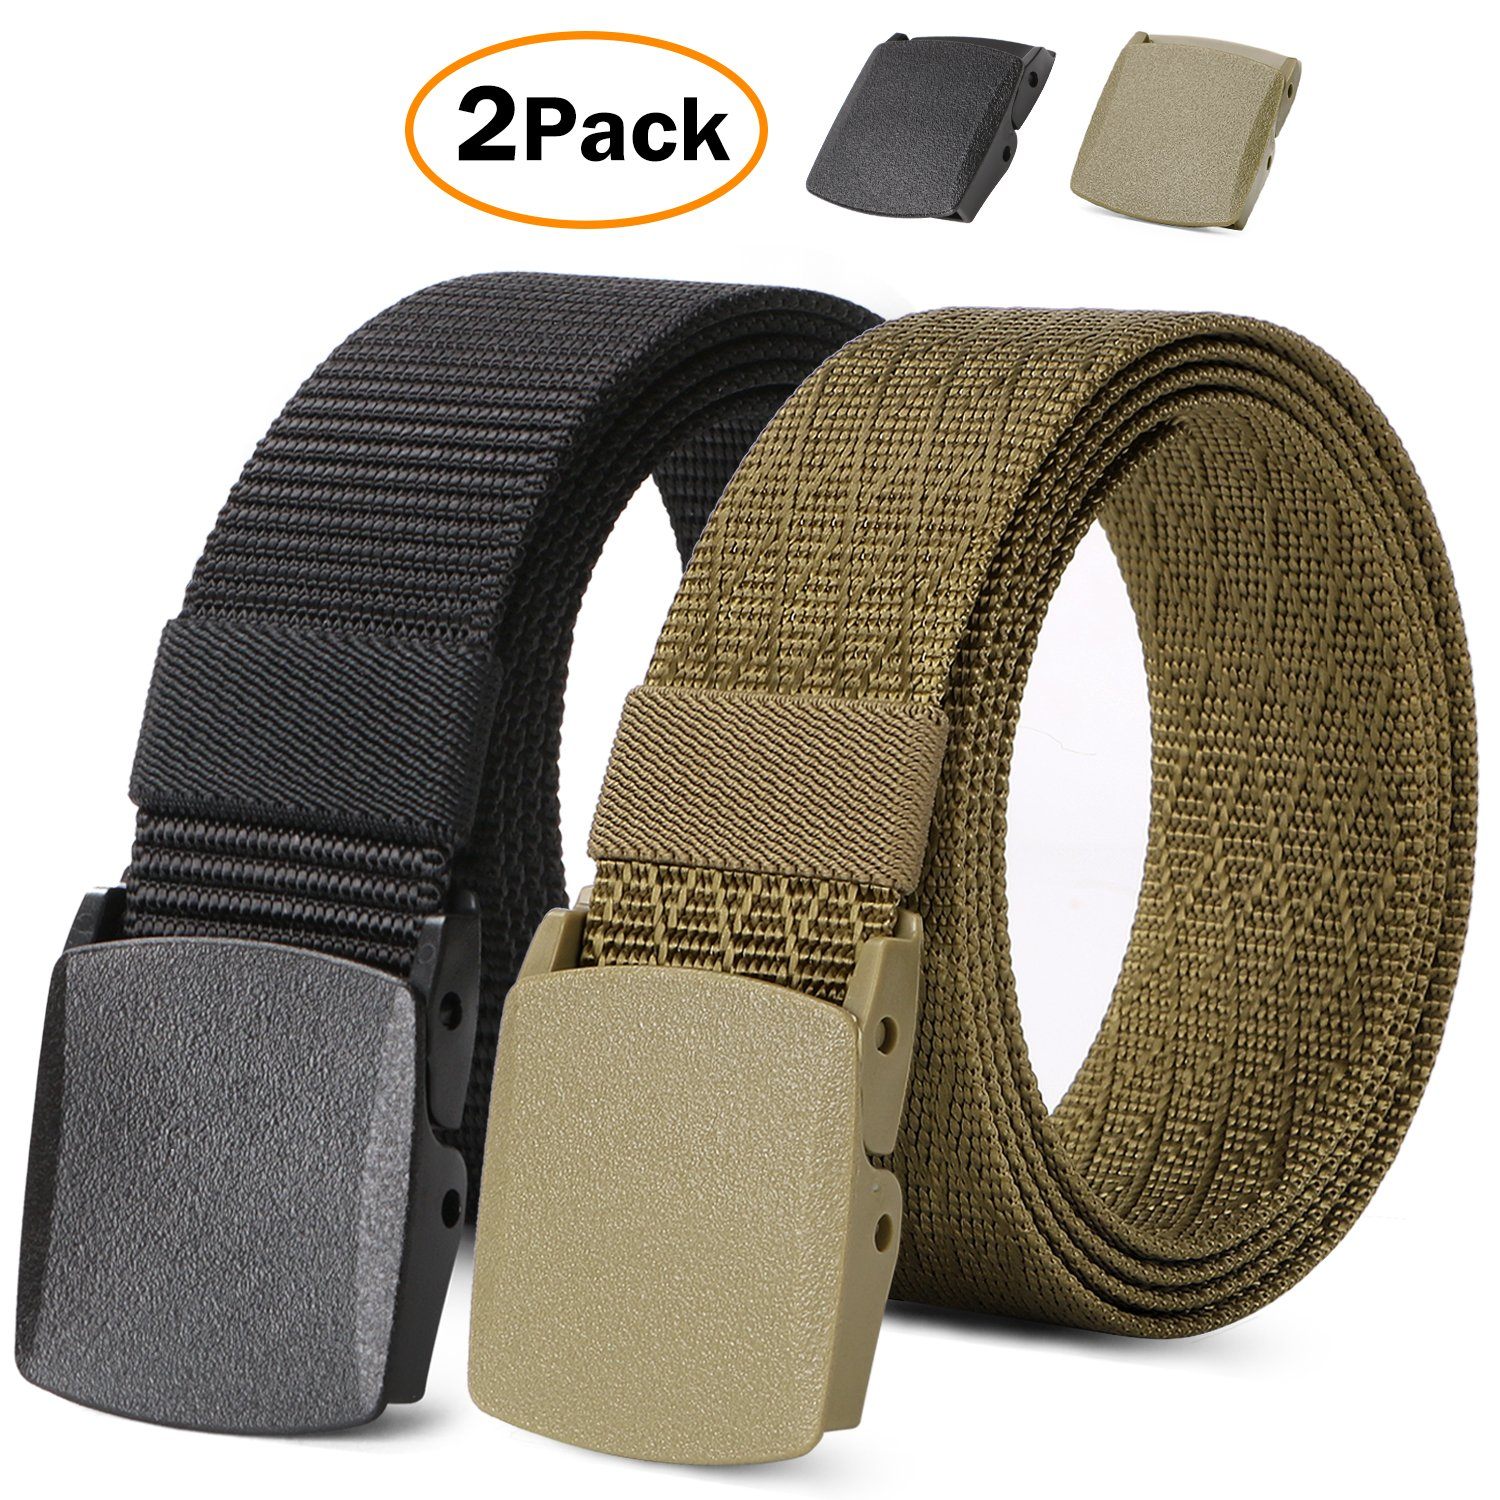 2 Pack Nylon Belts for Men Outdoor Military Web Belt Tactical Adjustable Belt with Plastic Buckle